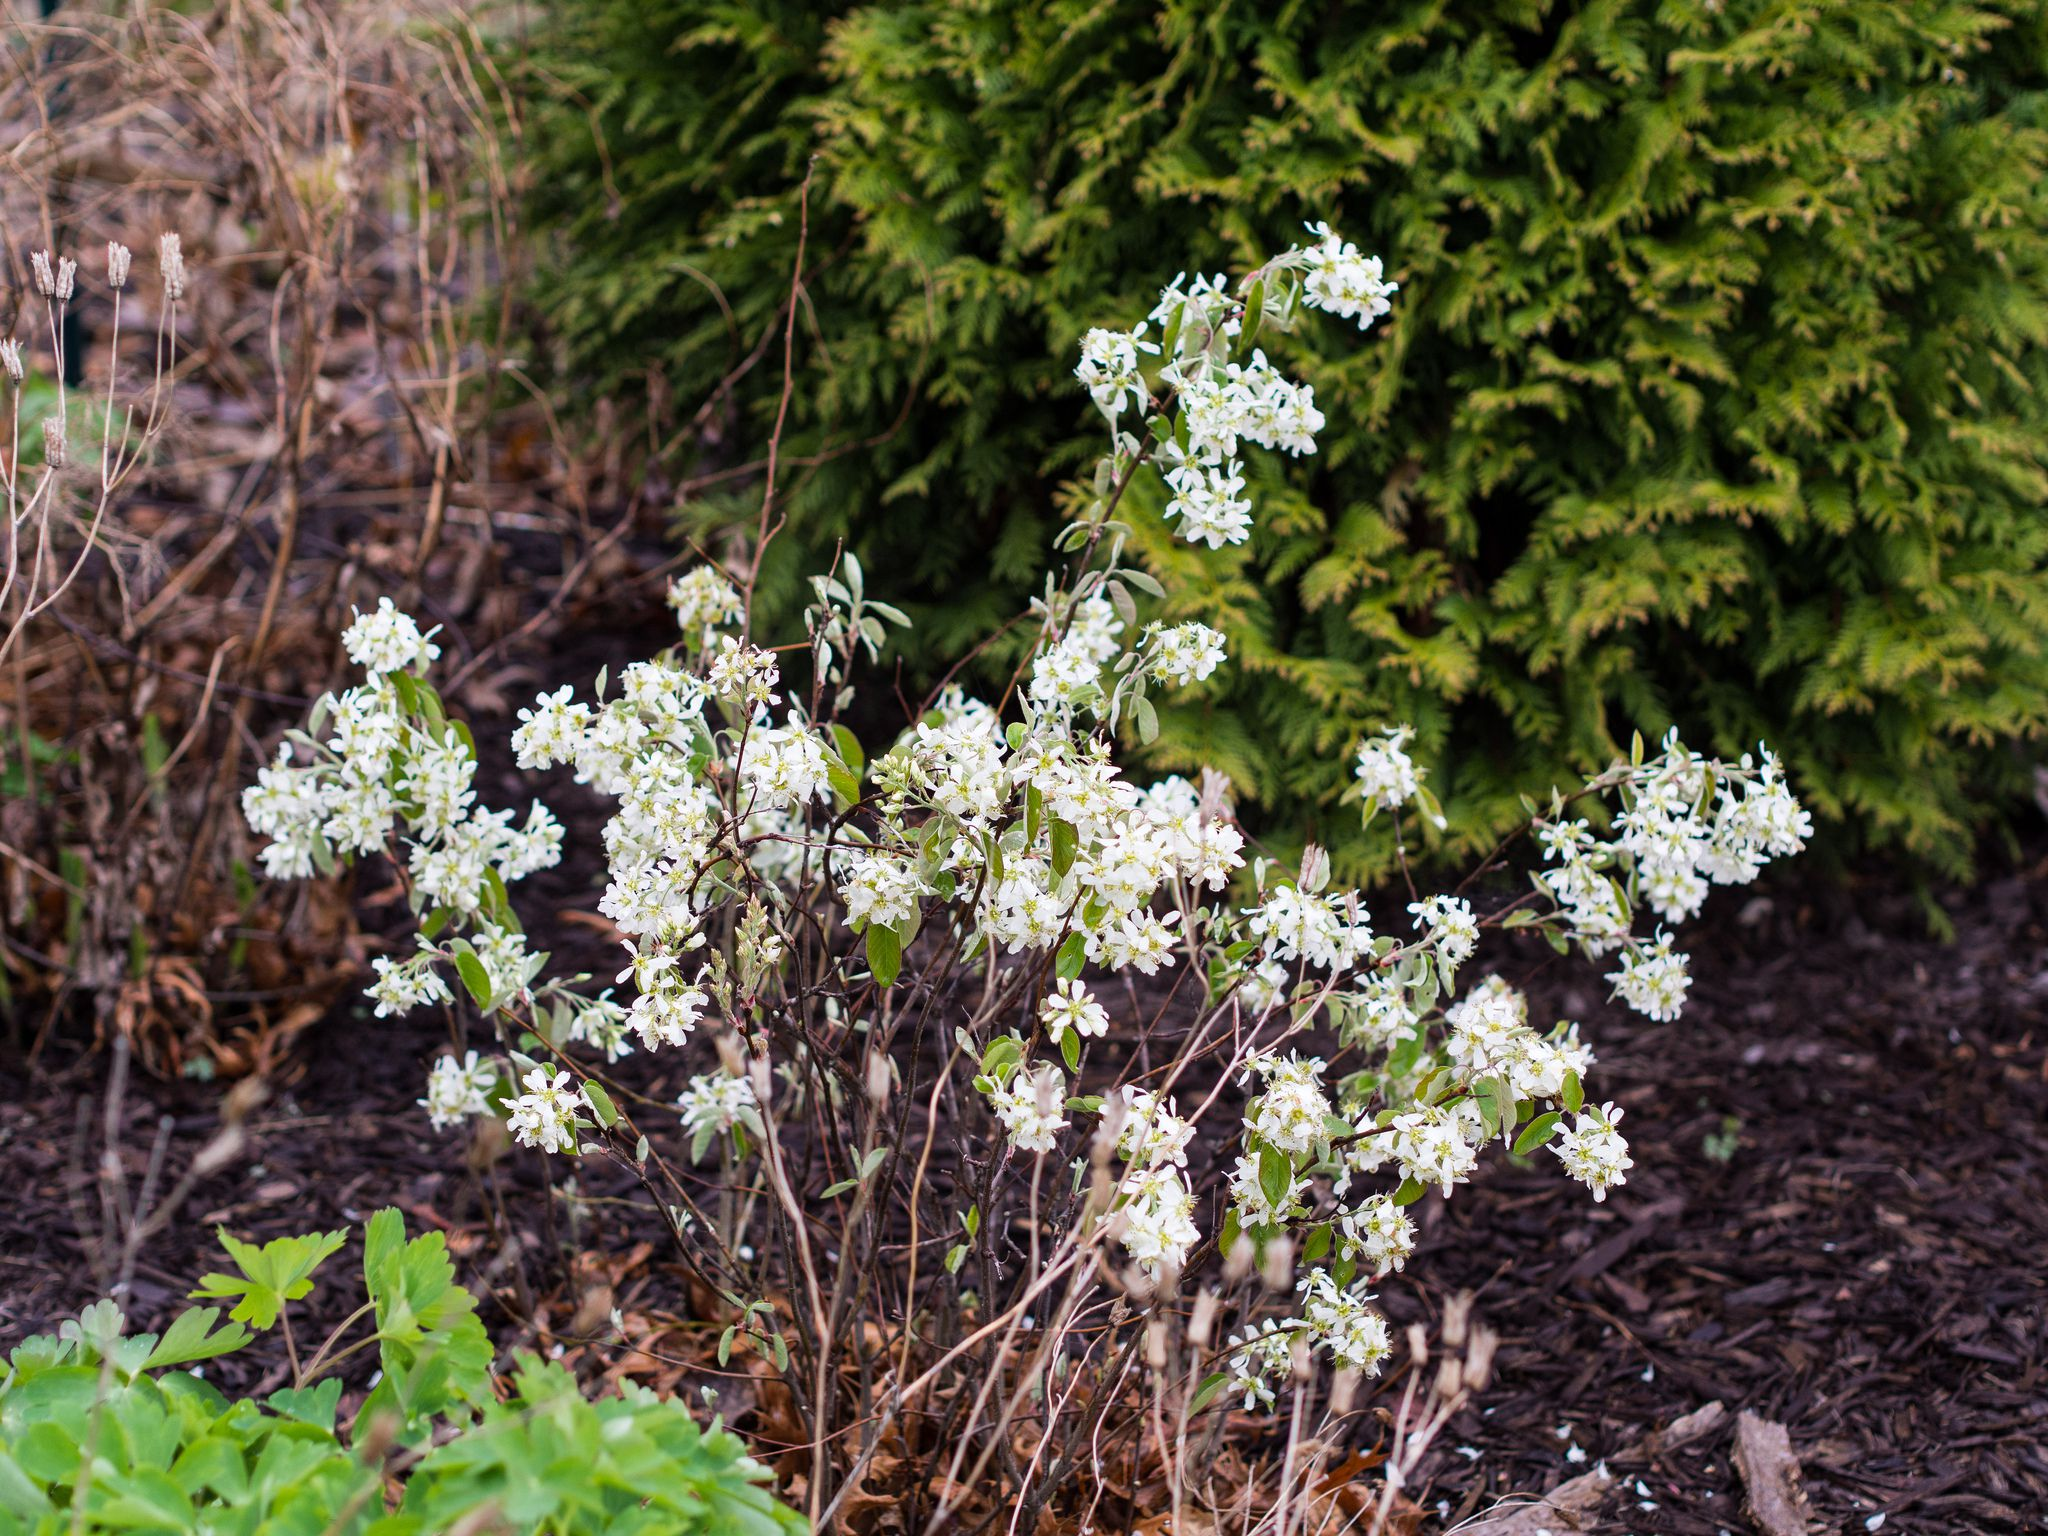 Ten Top Tips For Small Shady Urban Gardens: Shrubs For Part Shade And Full Shade Areas